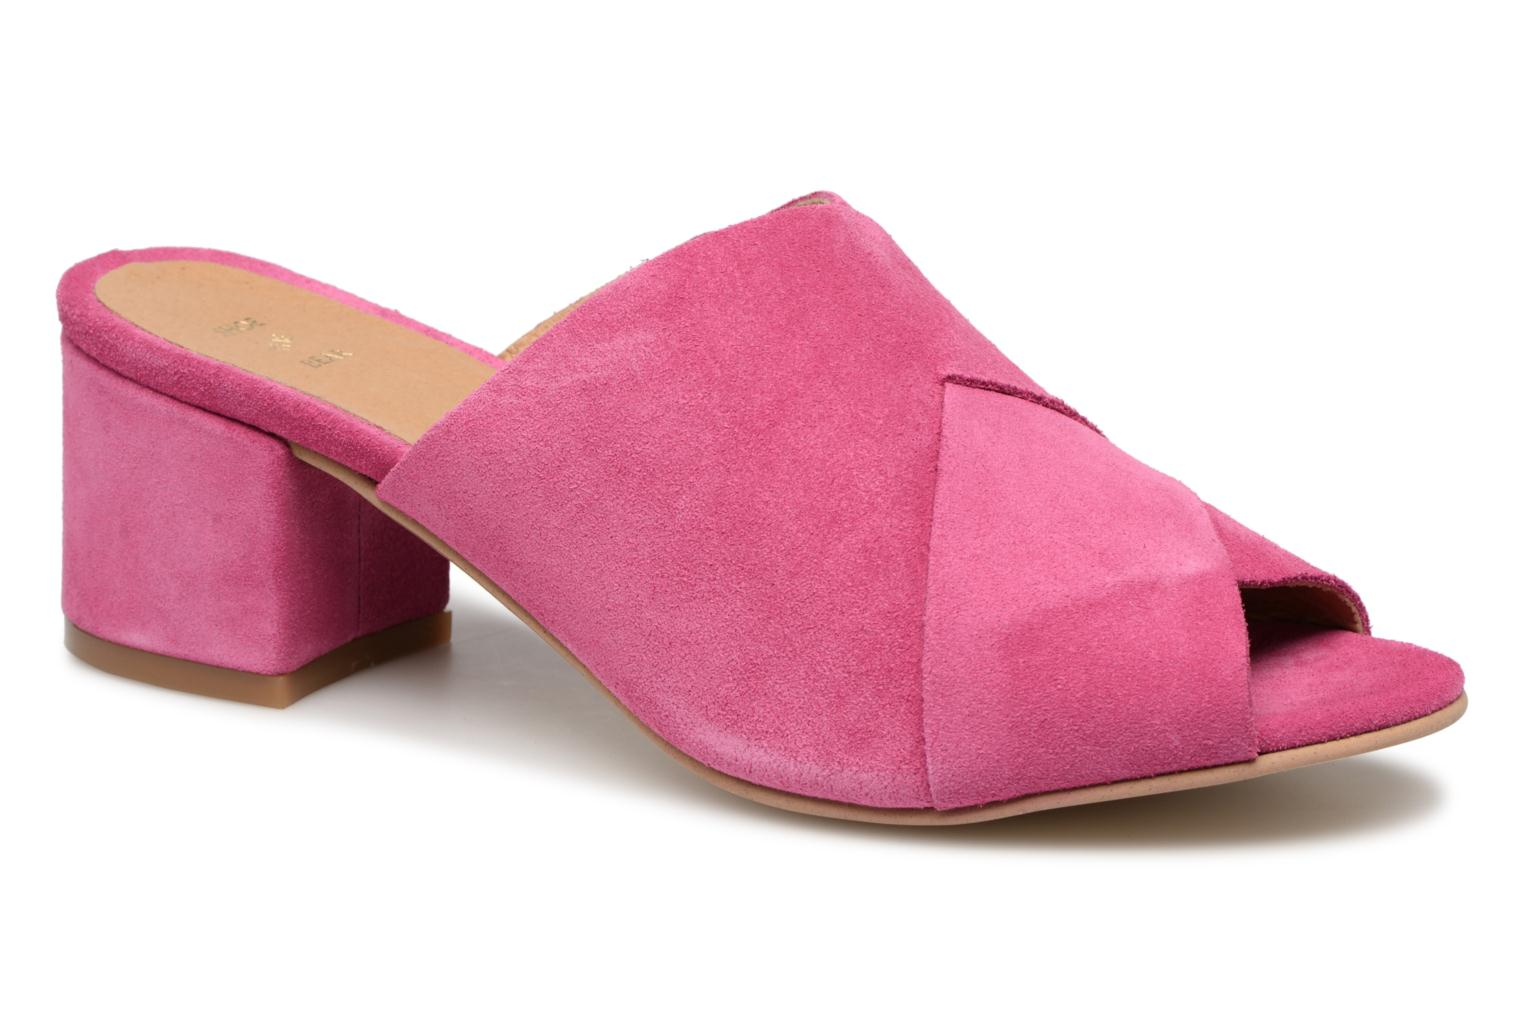 Shoe the Pink MARRY S bear 290 ppwqrPfz